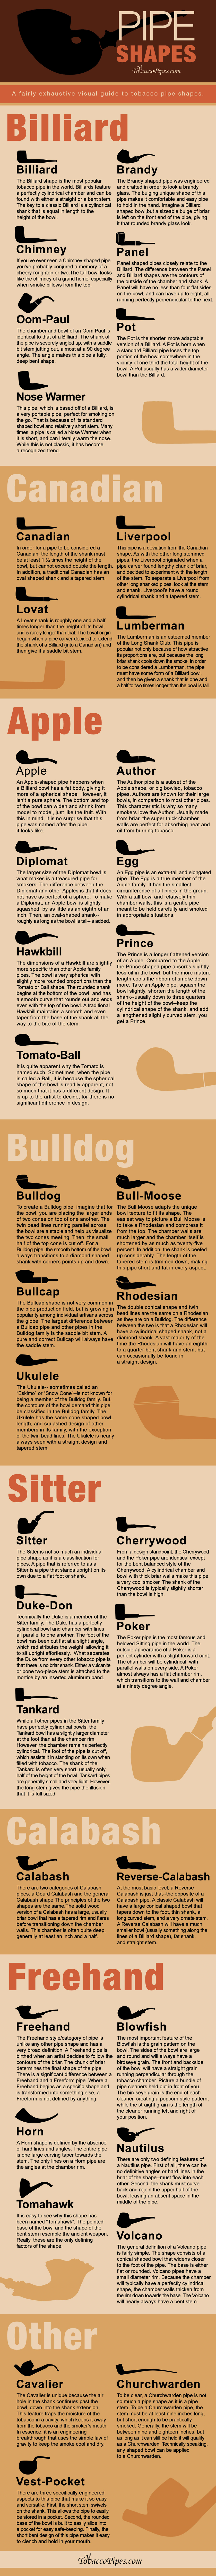 Complete Guide to Tobacco Pipes Shapes